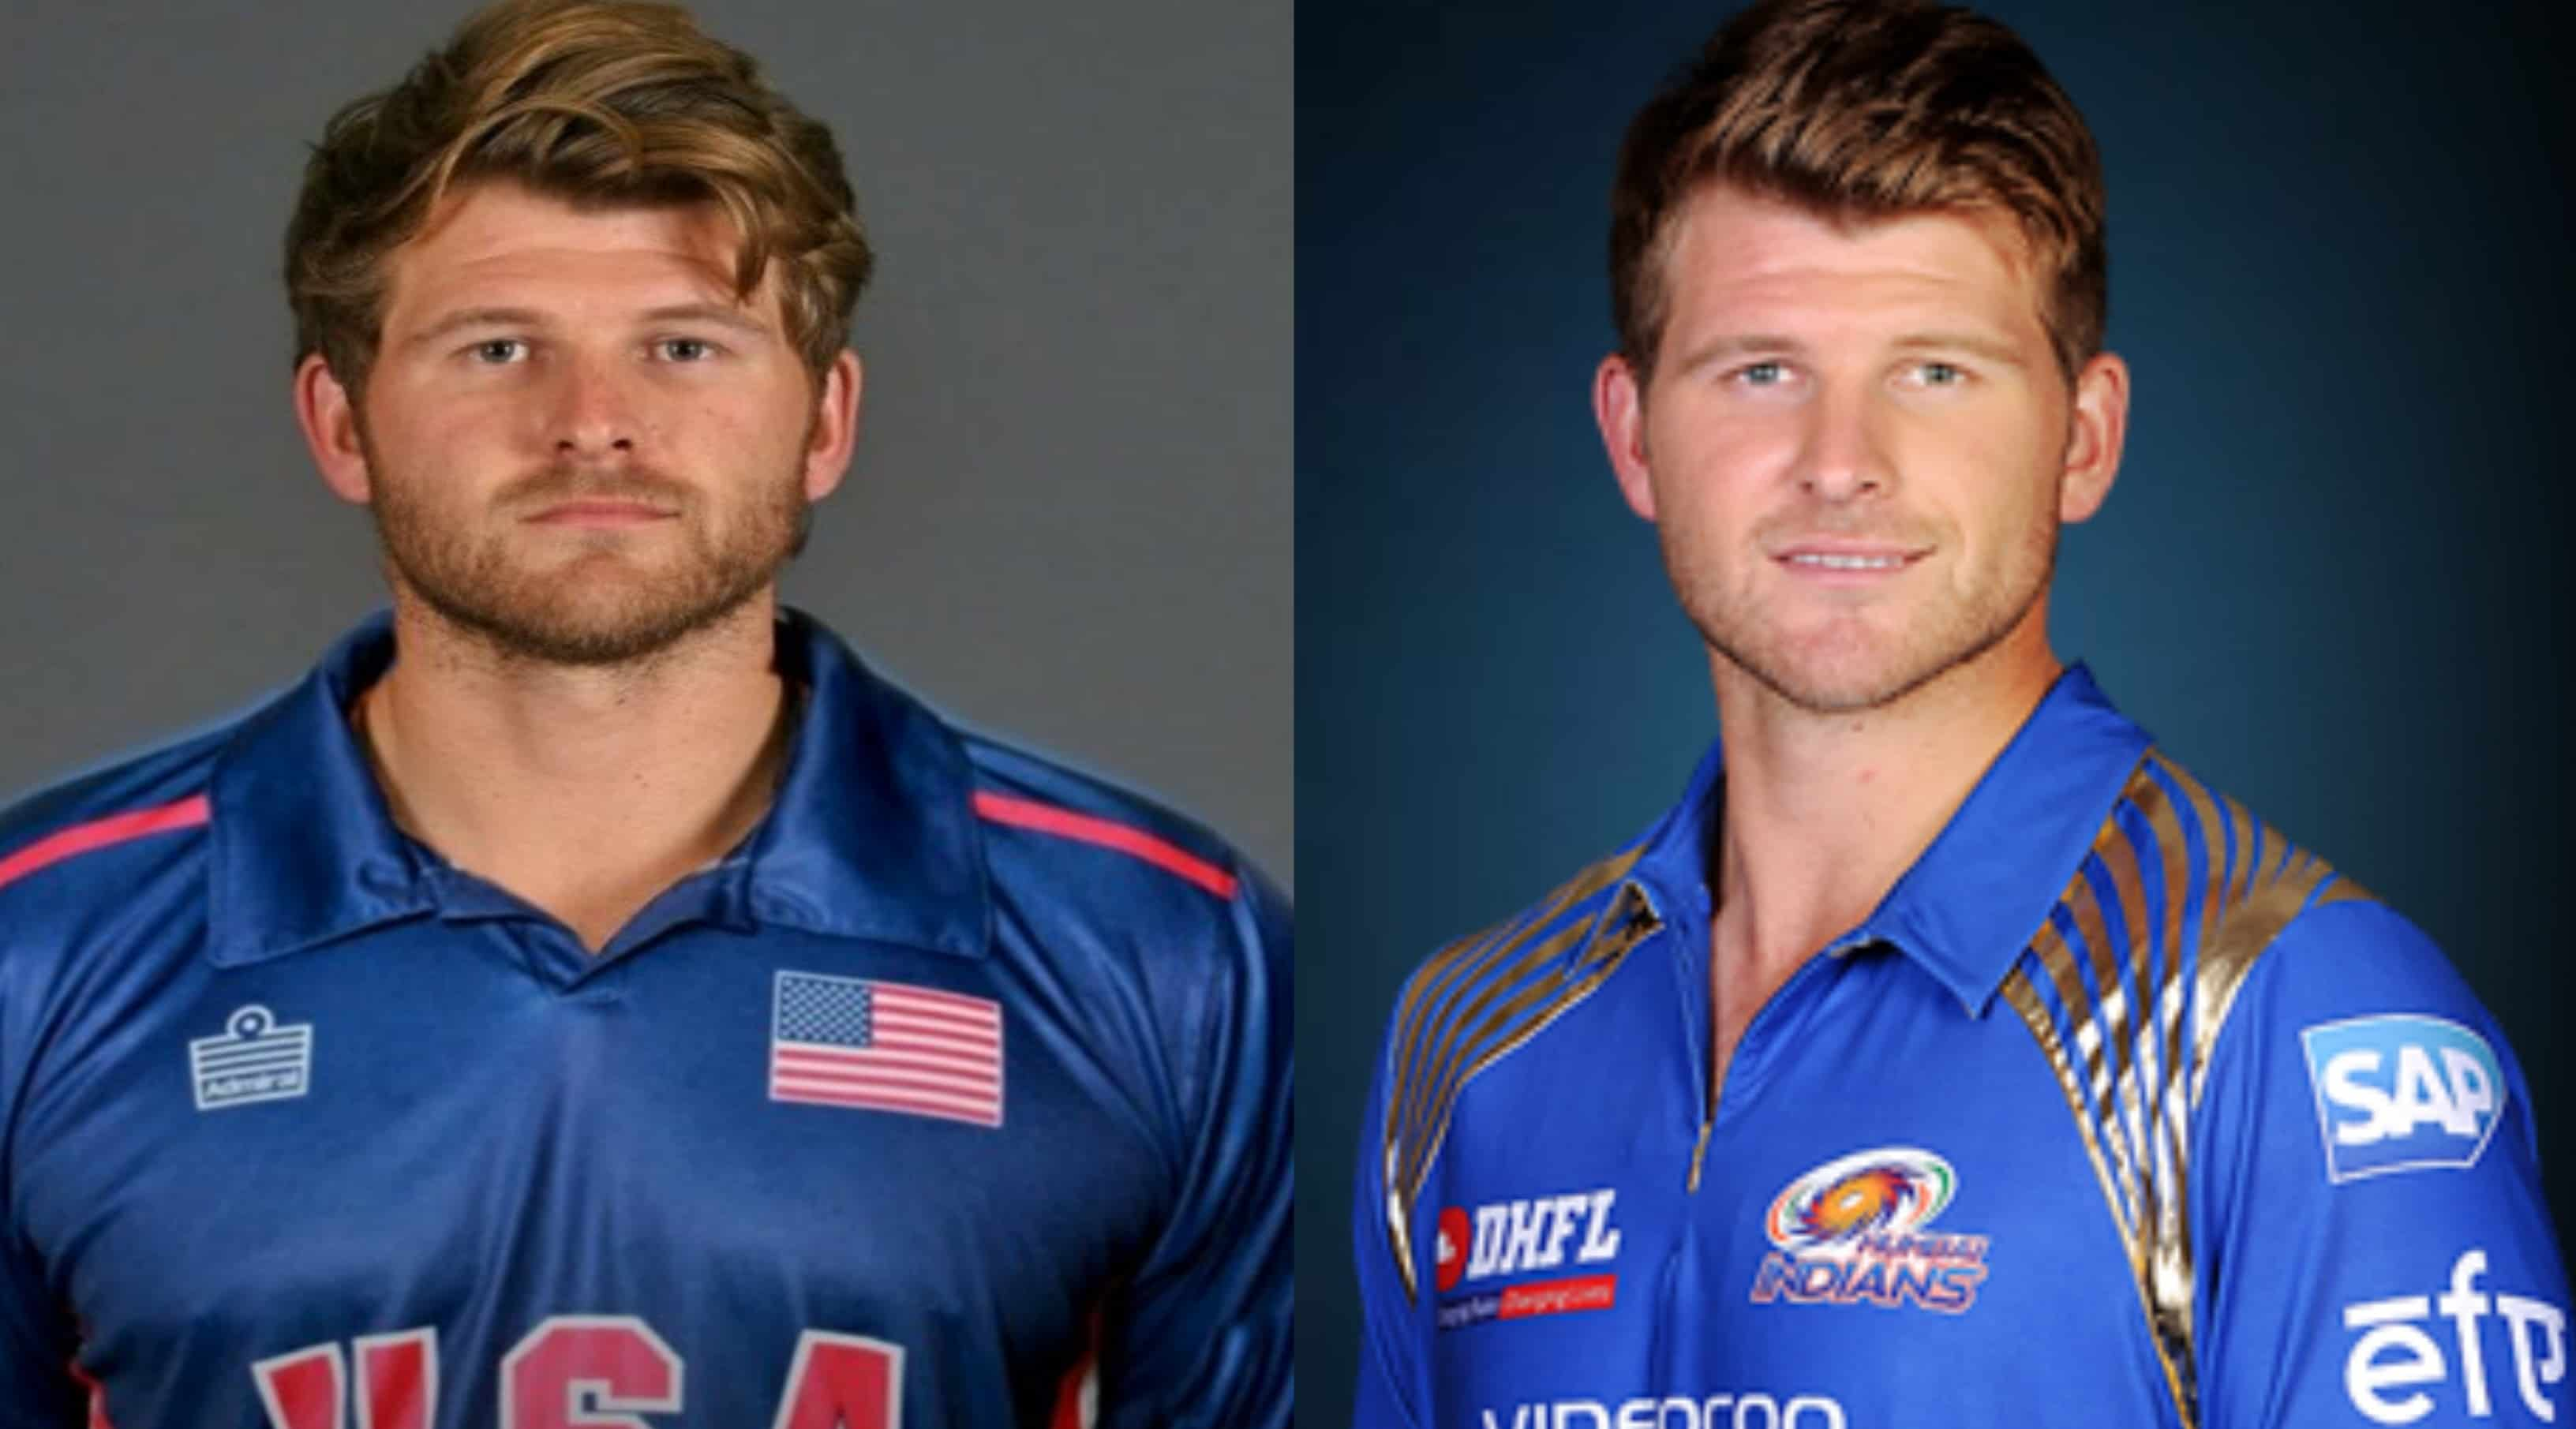 5 IPL players who are now involved with USA Cricket